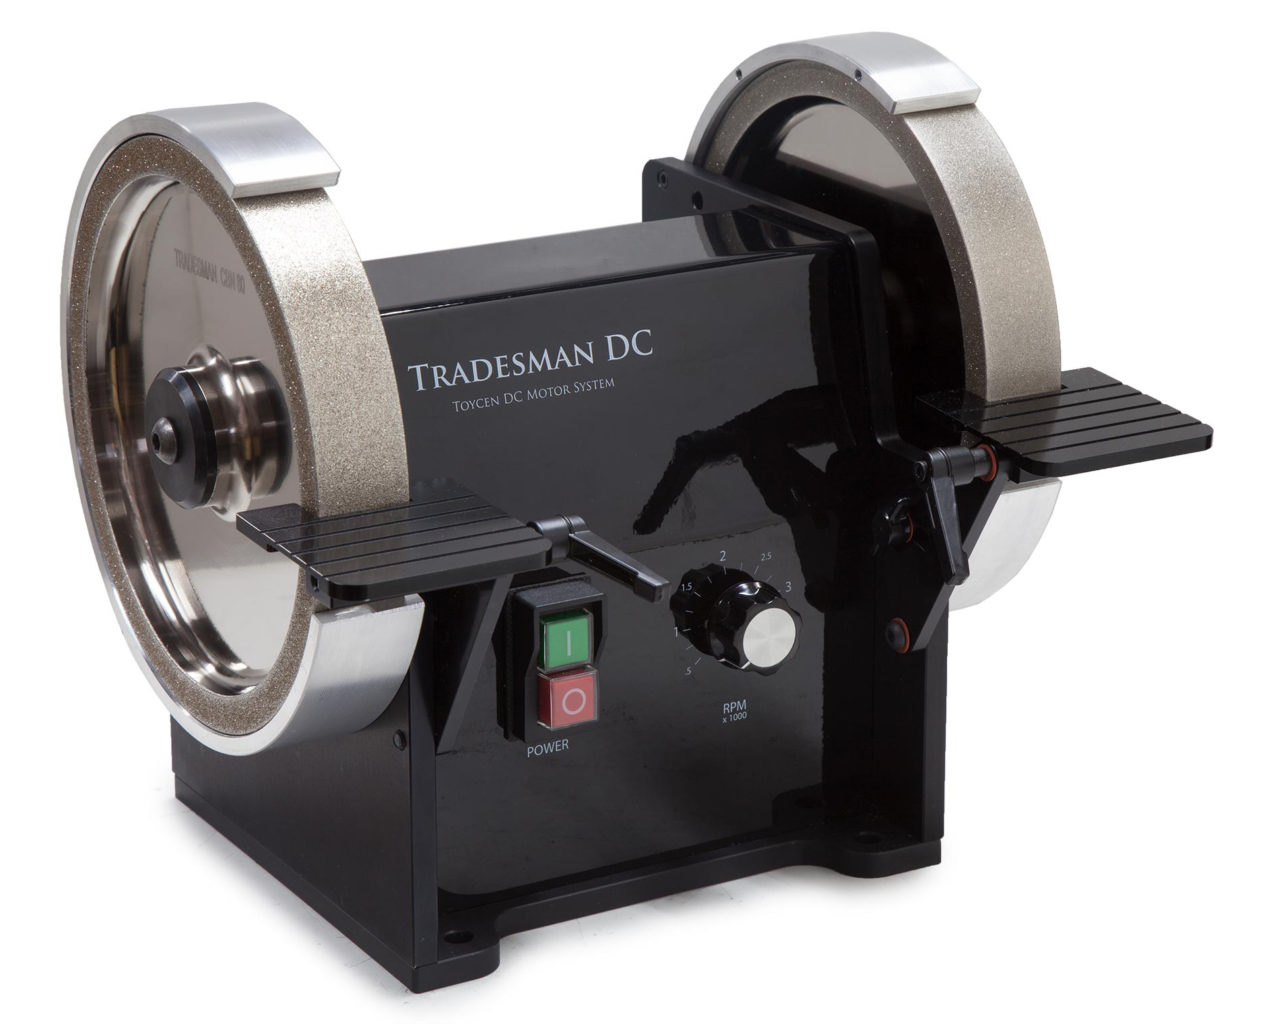 Tradesman 8 Quot Dc Variable Speed Bench Grinder Tradesman